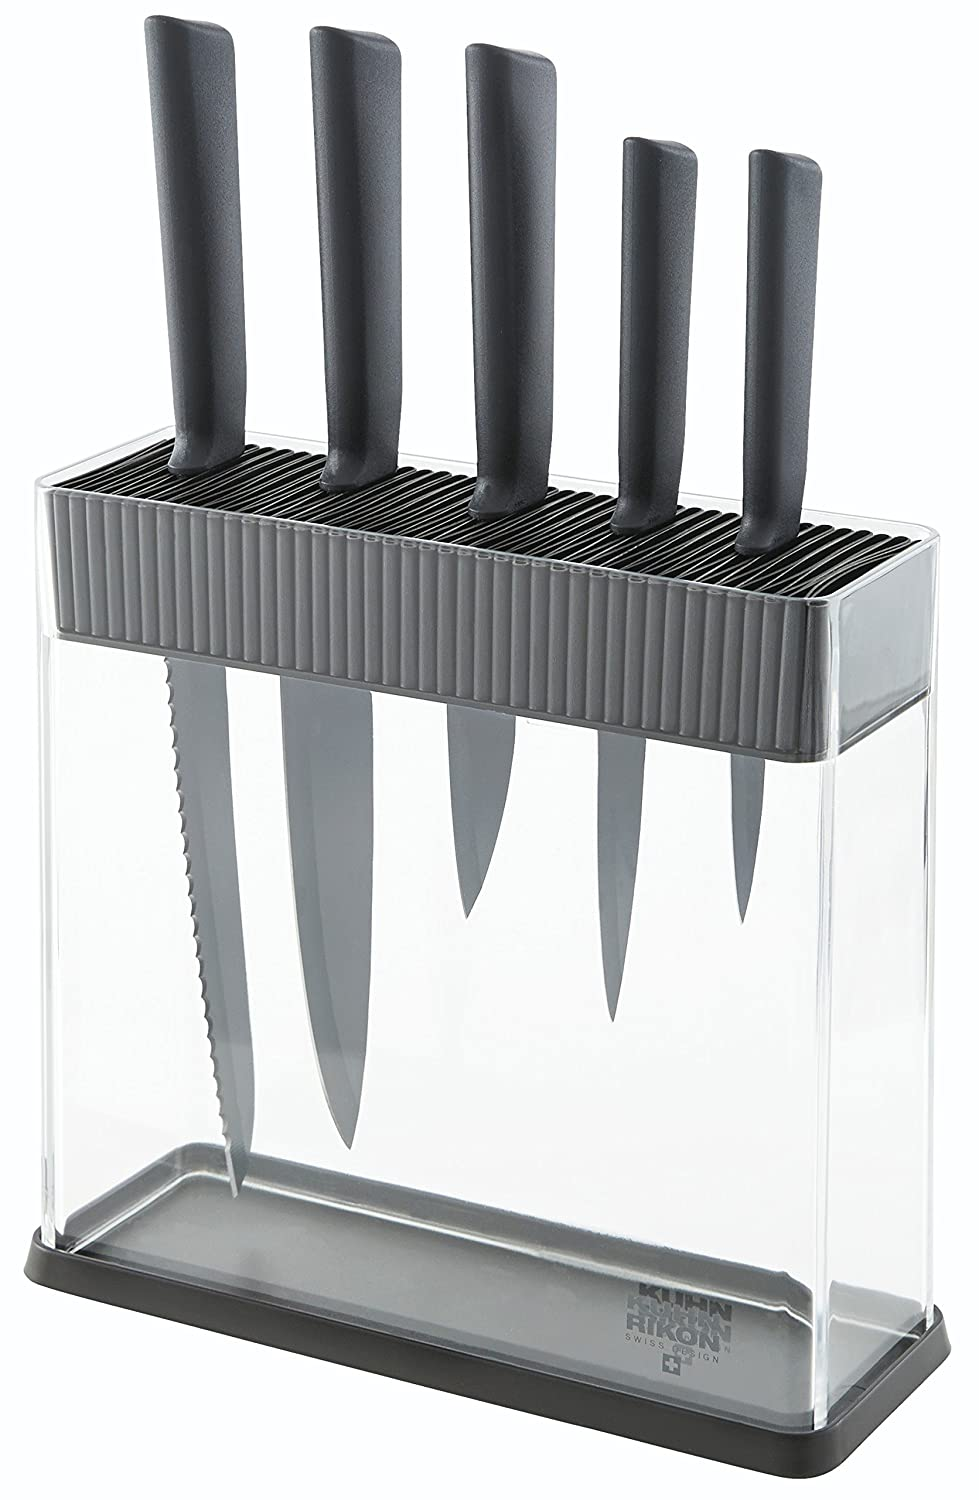 Kuhn Rikon Colori+ Set of 6 Non-Stick Knife Set with Block, Black Kuhn Rikon Of Switzerland 26592